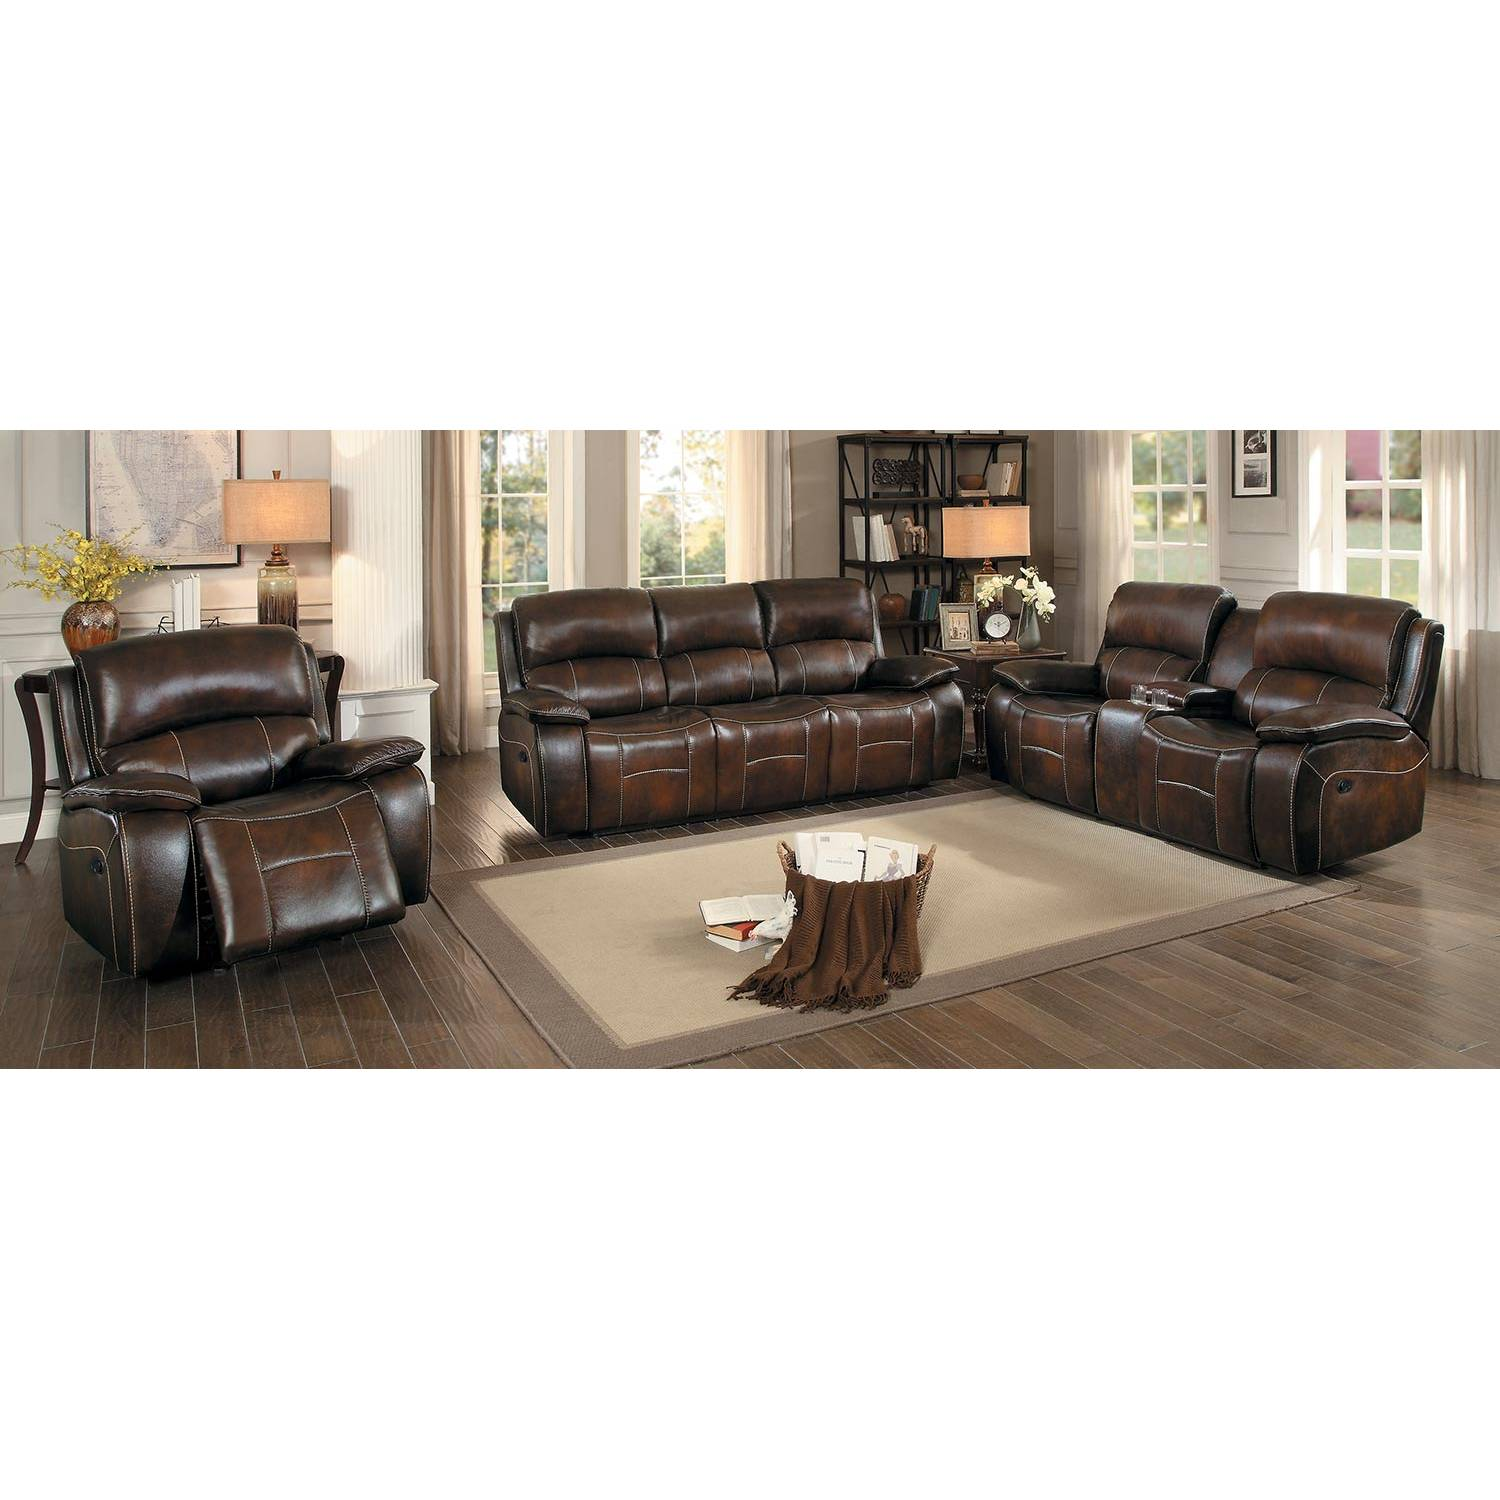 Mahala Power Reclining Sofa Set 3pcs - Brown Top Grain Leather ...